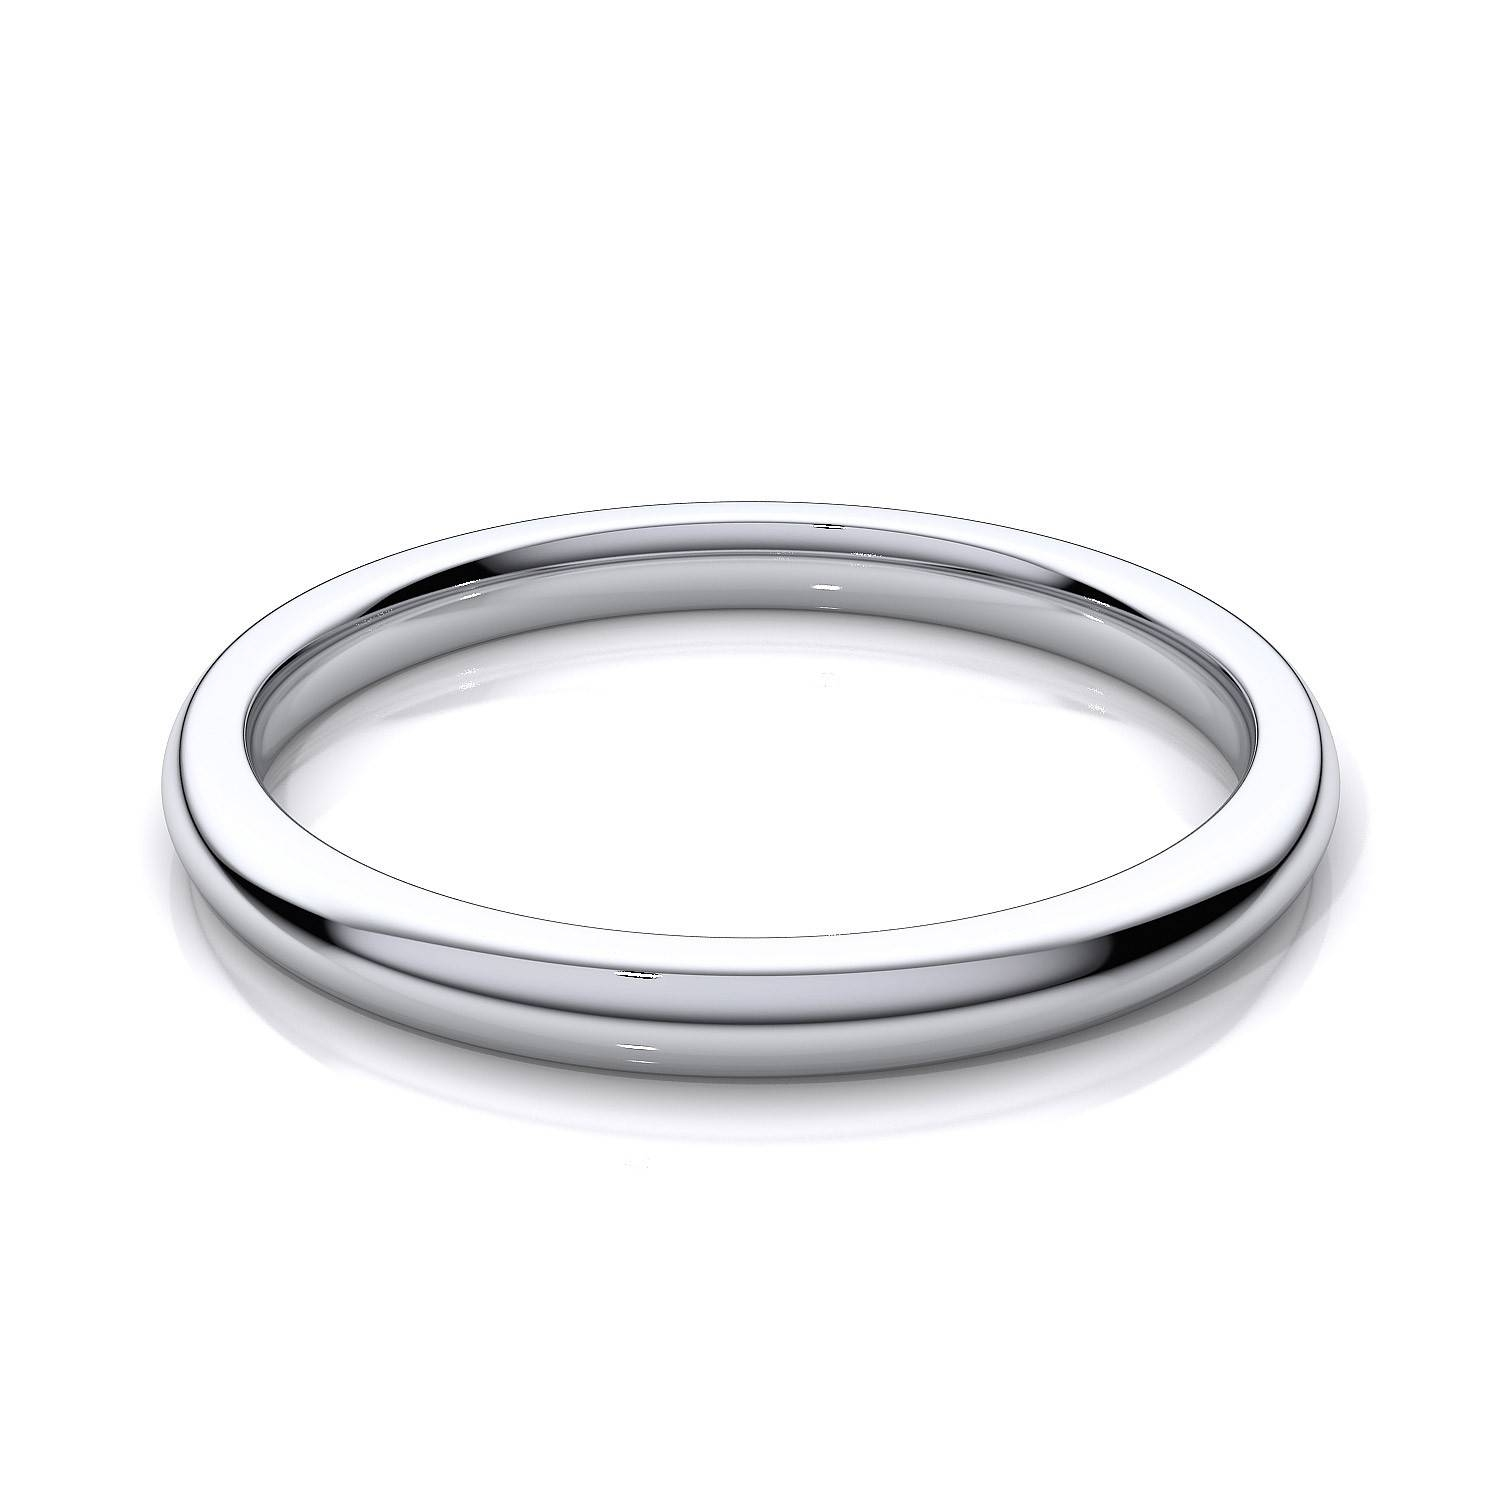 2Mm Women's Comfort Fit Plain Wedding Band In 14K White Gold Regarding White Gold Wedding Bands For Women (View 6 of 15)